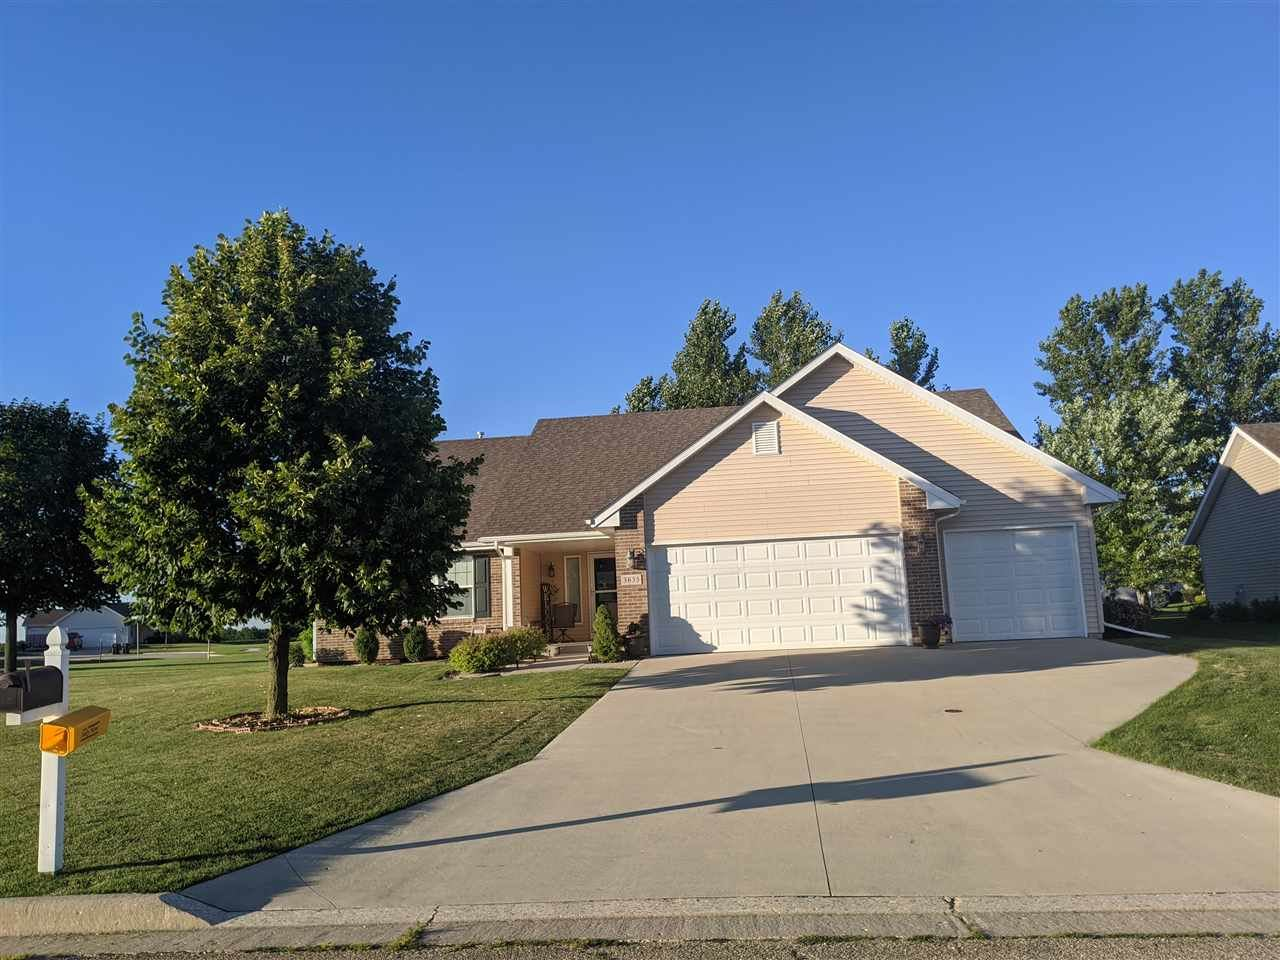 3635 Eagles Ridge Dr, Beloit, WI 53511 - #: 1889114